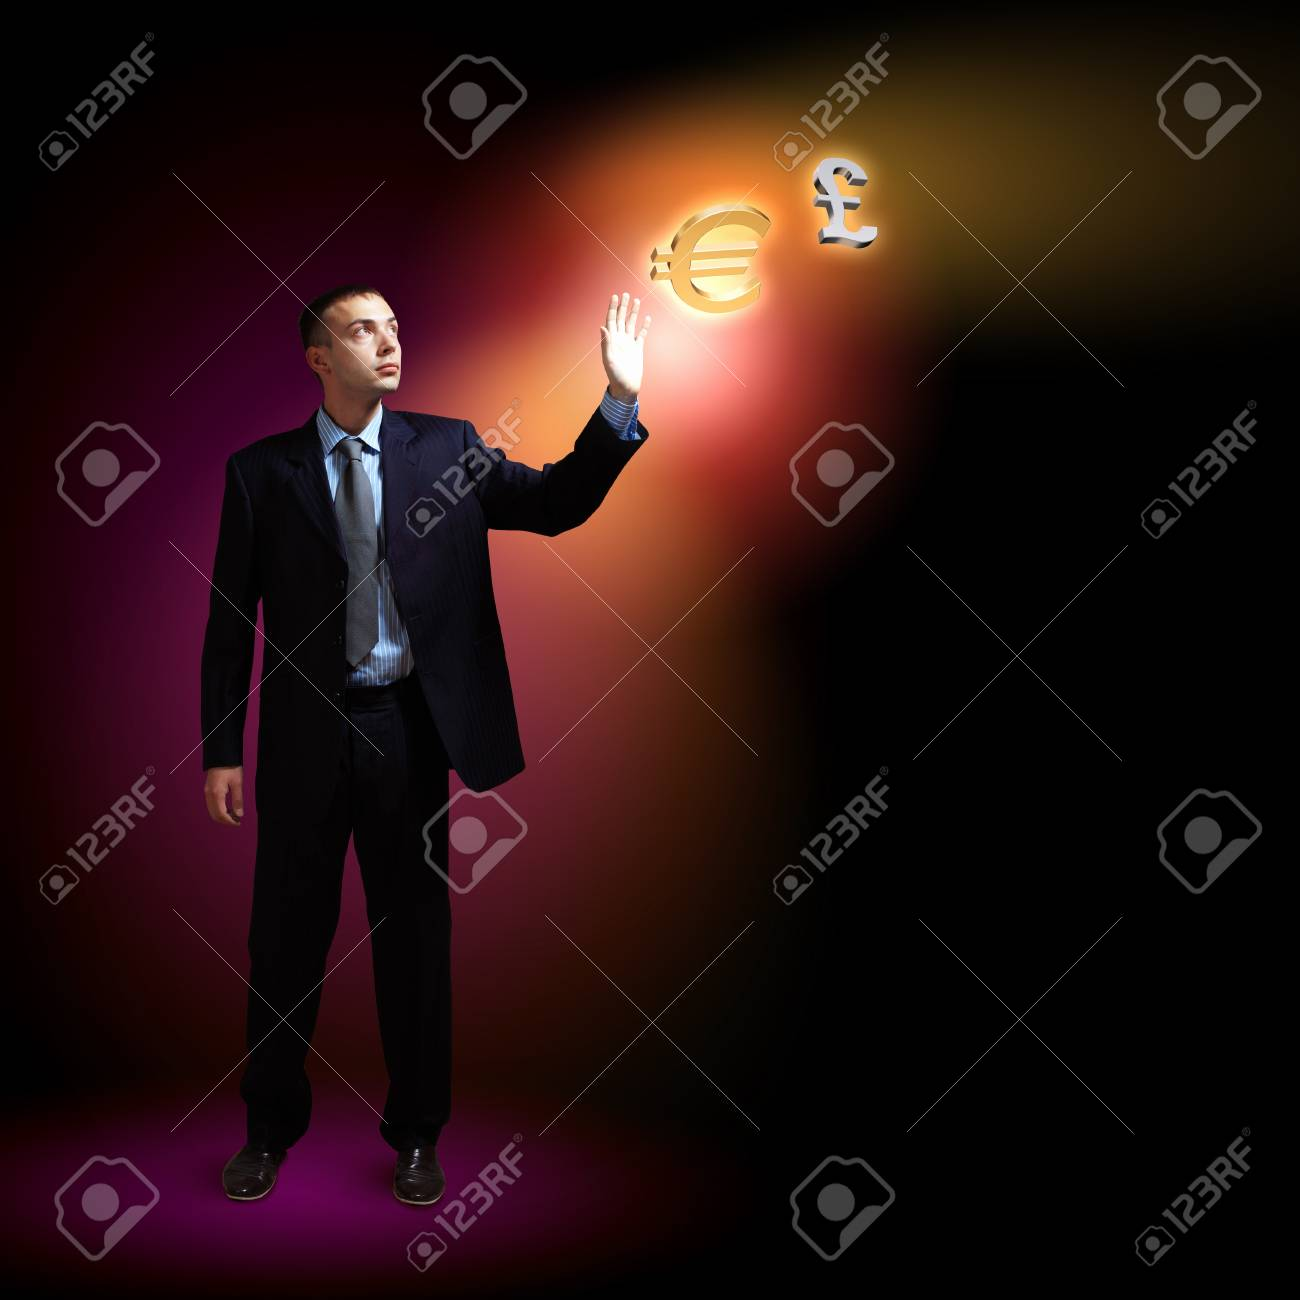 Modern people doing business, young businessman with money symbols Stock Photo - 16716435